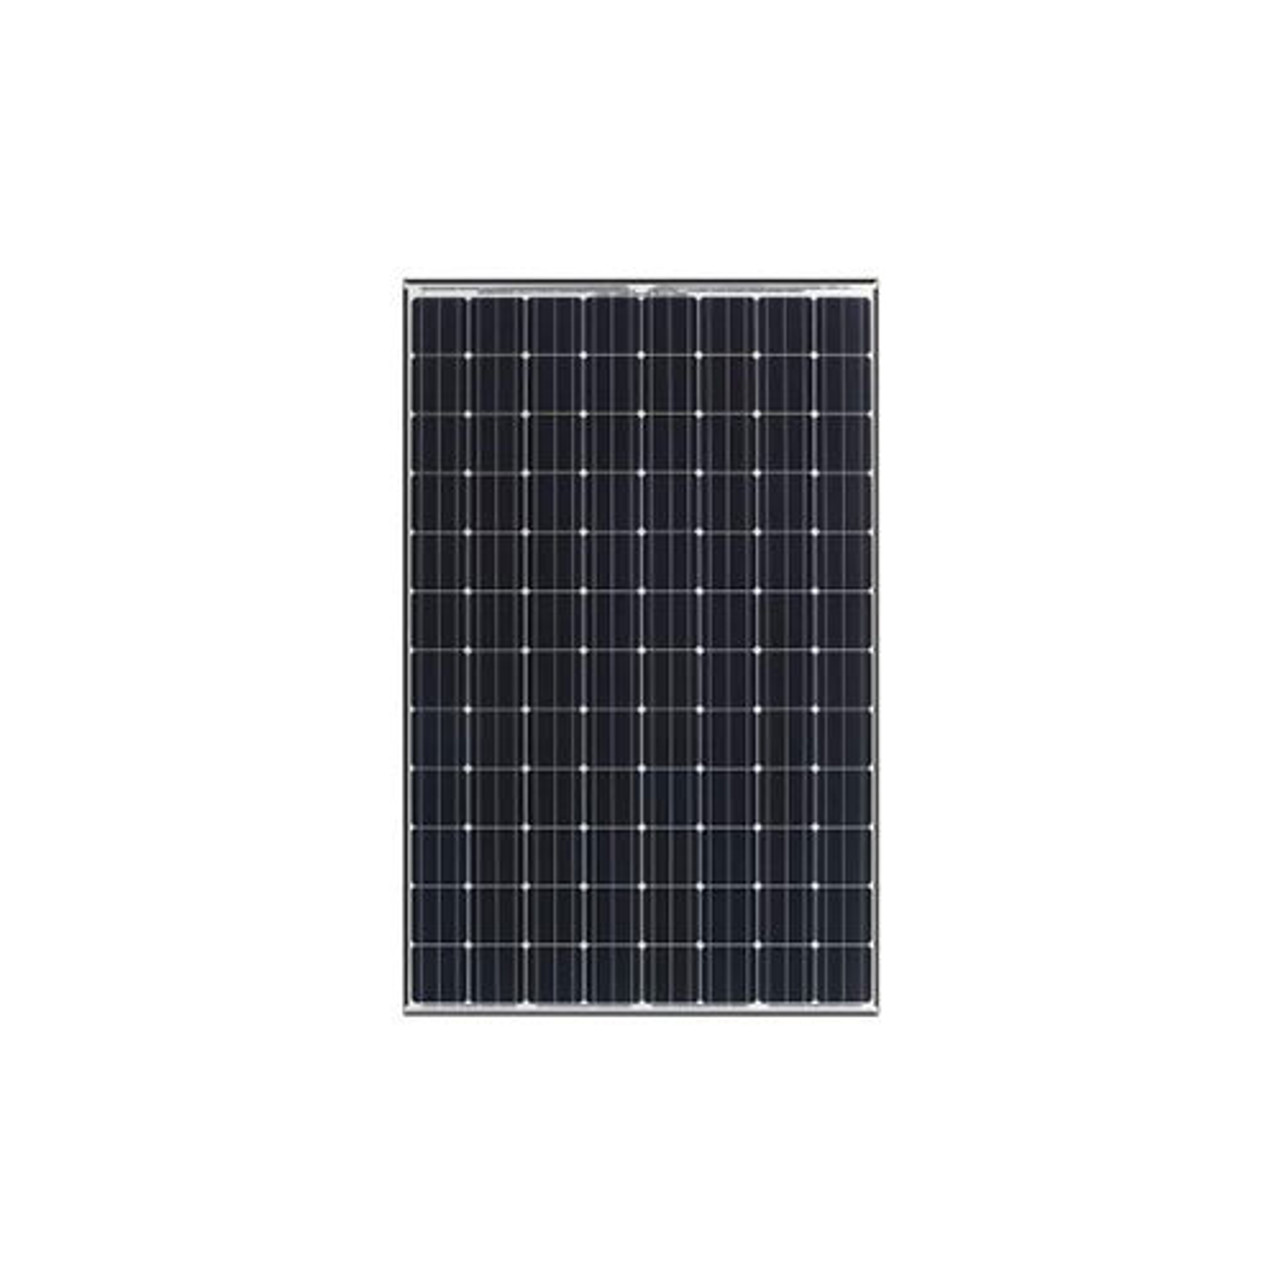 340 Watt Panasonic Hit Bifacial Solar Panel Vbhn340sa17 Sunwatts